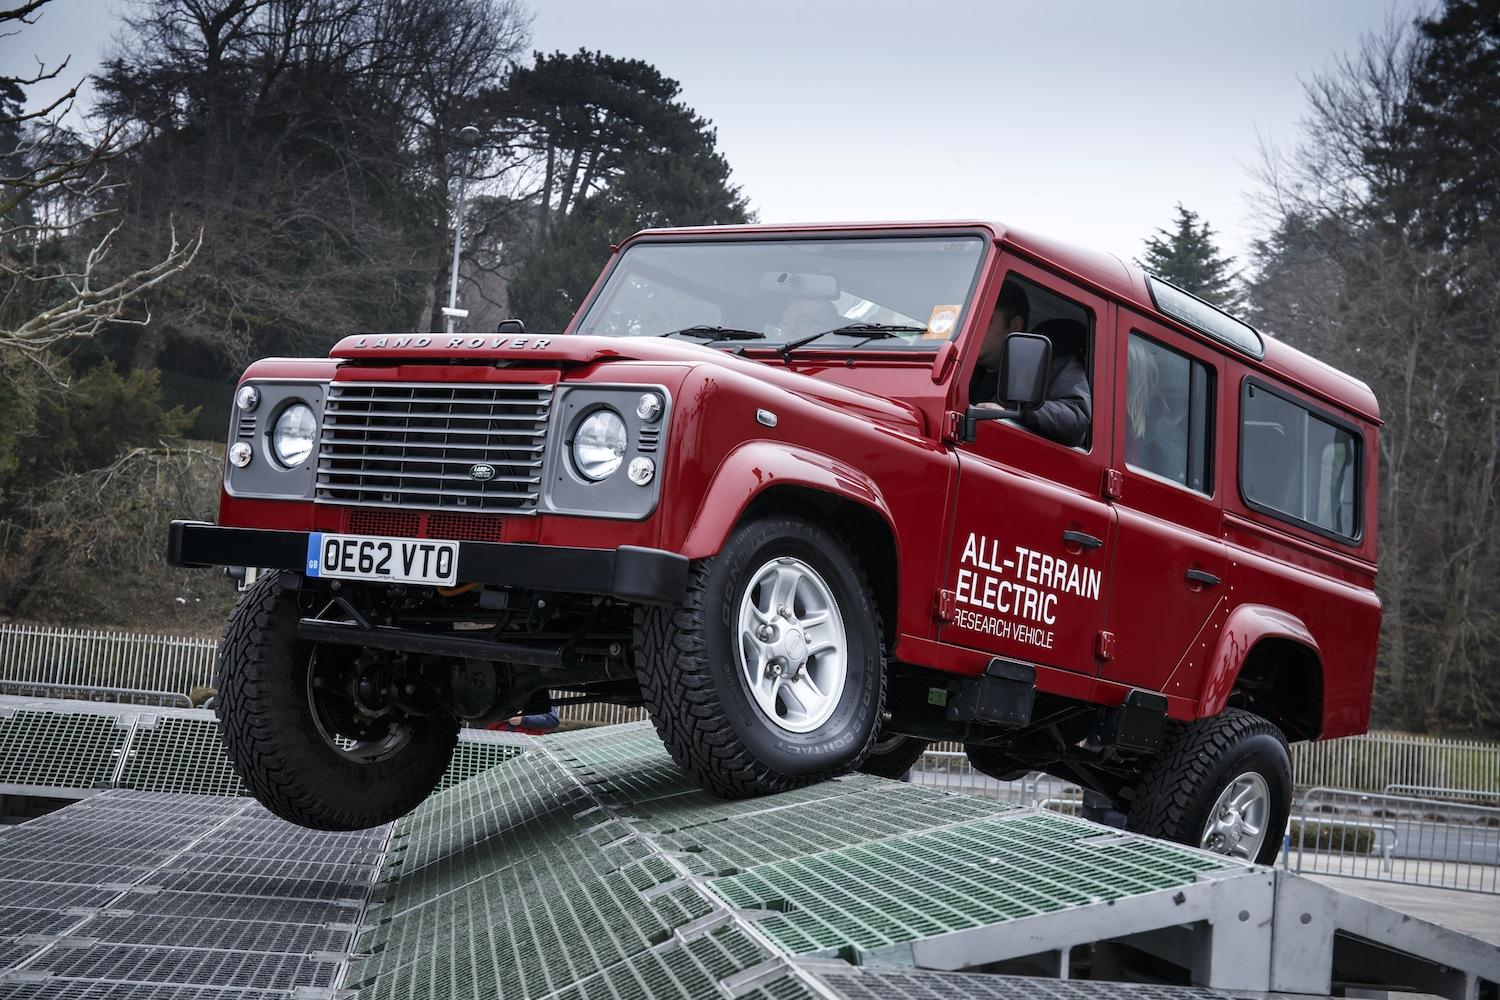 smart business with Land Rover Defender To Fight No More Forever Production Ending In 2015 on The Difference With Blockchain also Land Rover Defender To Fight No More Forever Production Ending In 2015 likewise User Experience Mobile Strategy furthermore 866 Lenovo Logo Download additionally Bargains When Travelling In Bavaria Db.